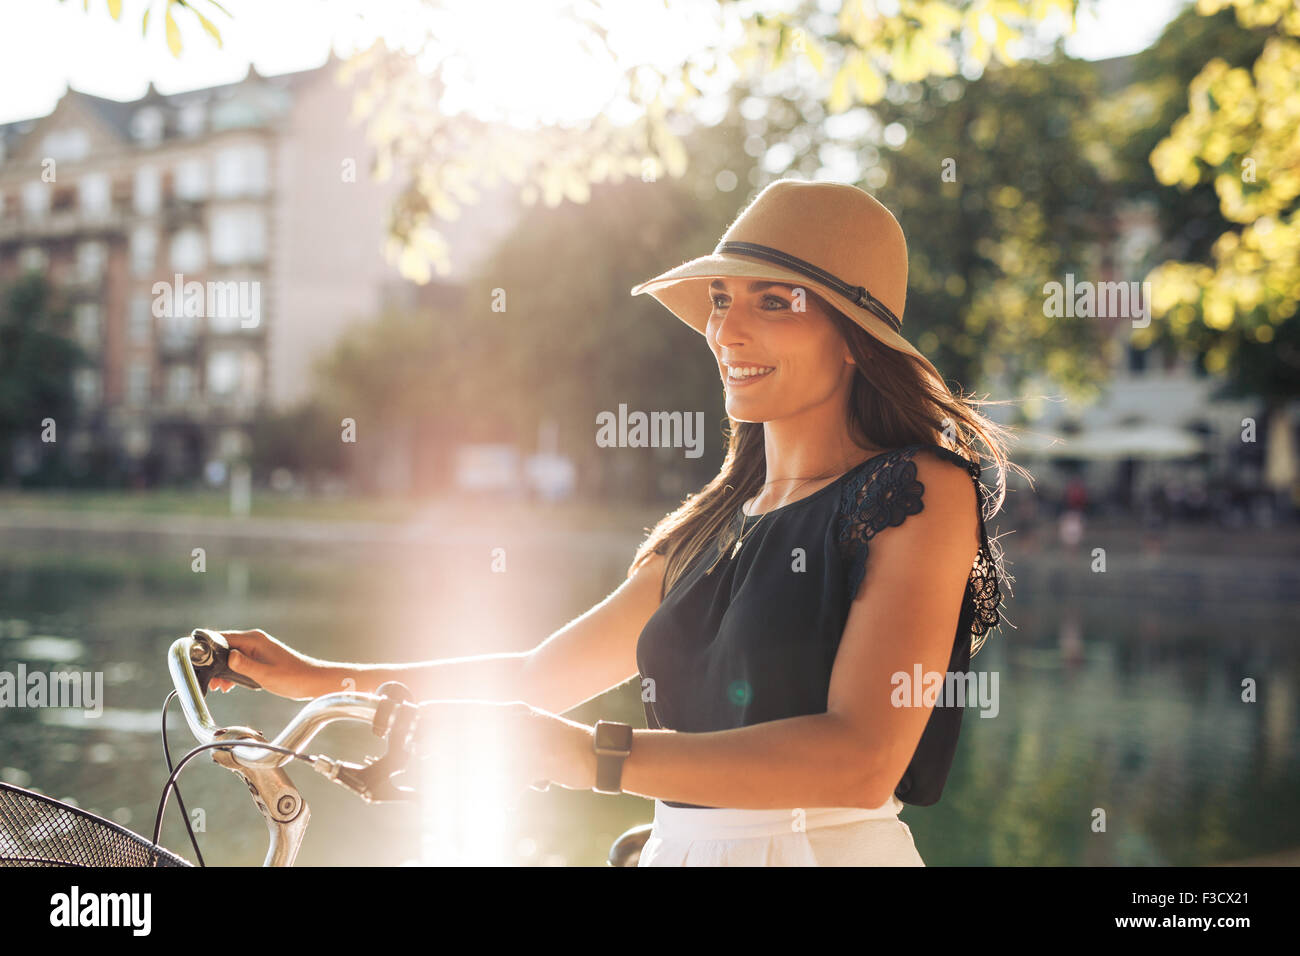 Portrait of happy young woman at the city park walking along a pond with her bicycle. European female model wearing - Stock Image